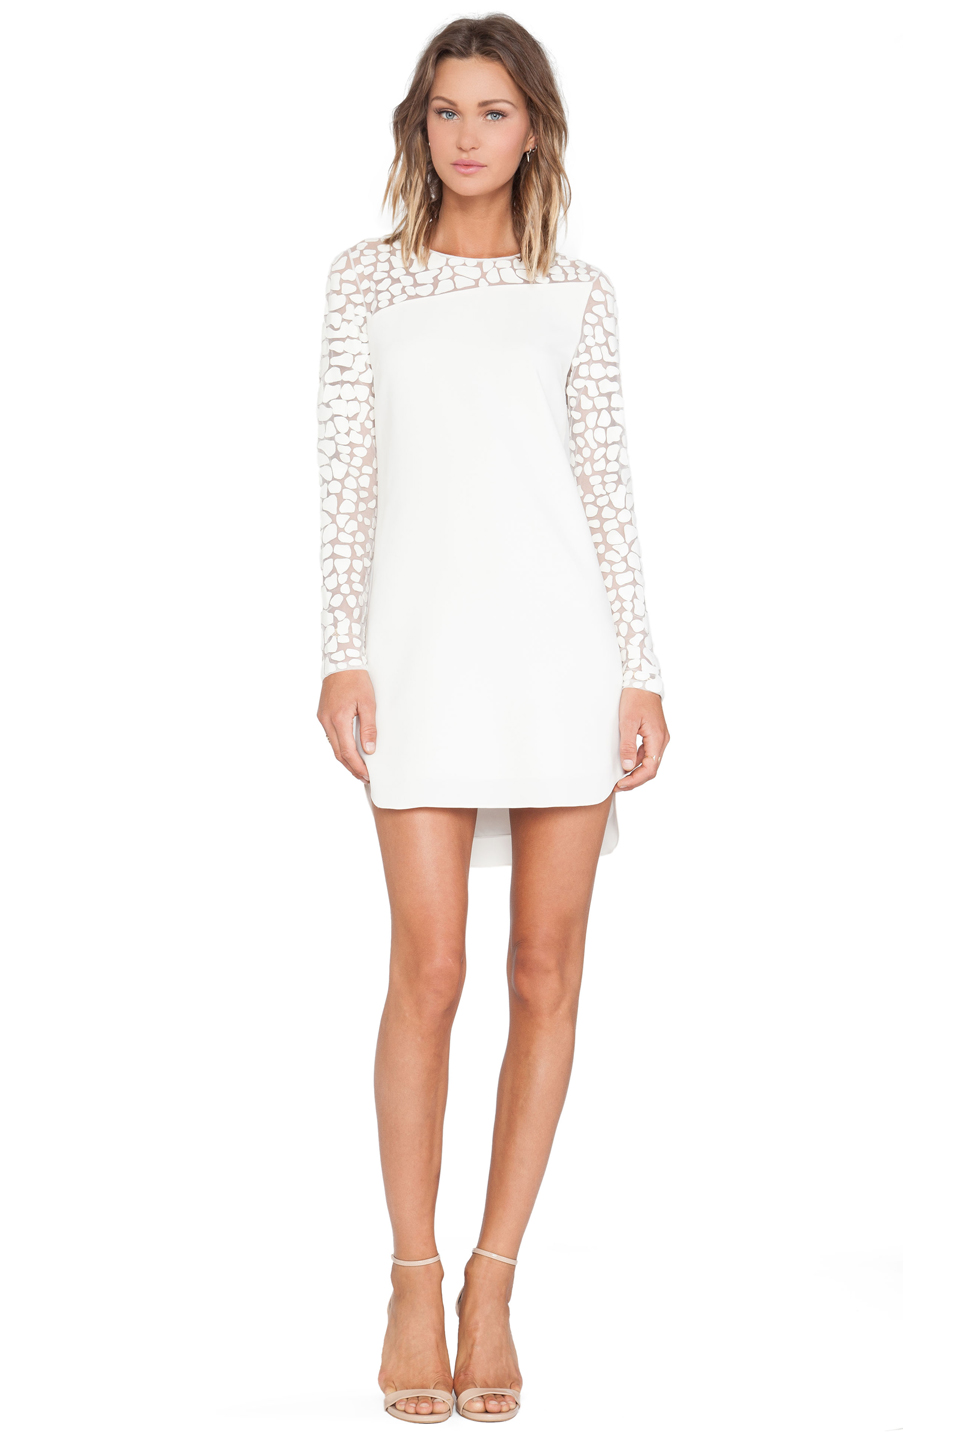 Sachin   babi illusion dress in ivory from revolveclothing.com